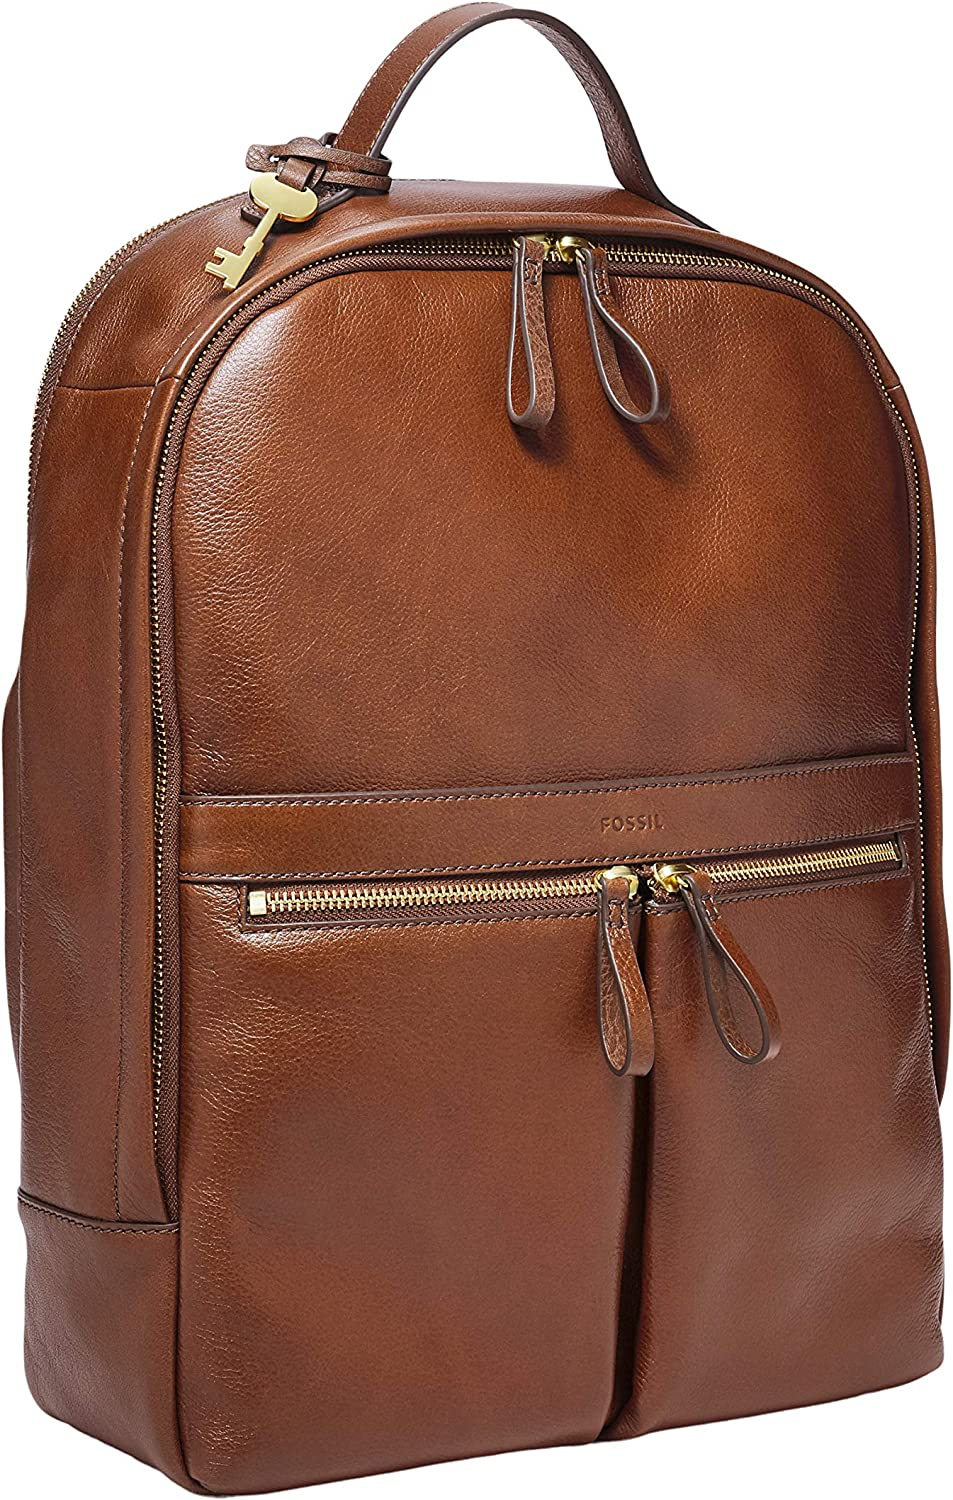 Fossil Women's Tess Leather Laptop SEAL limited product wholesale Backpack Brown Handbag Purse